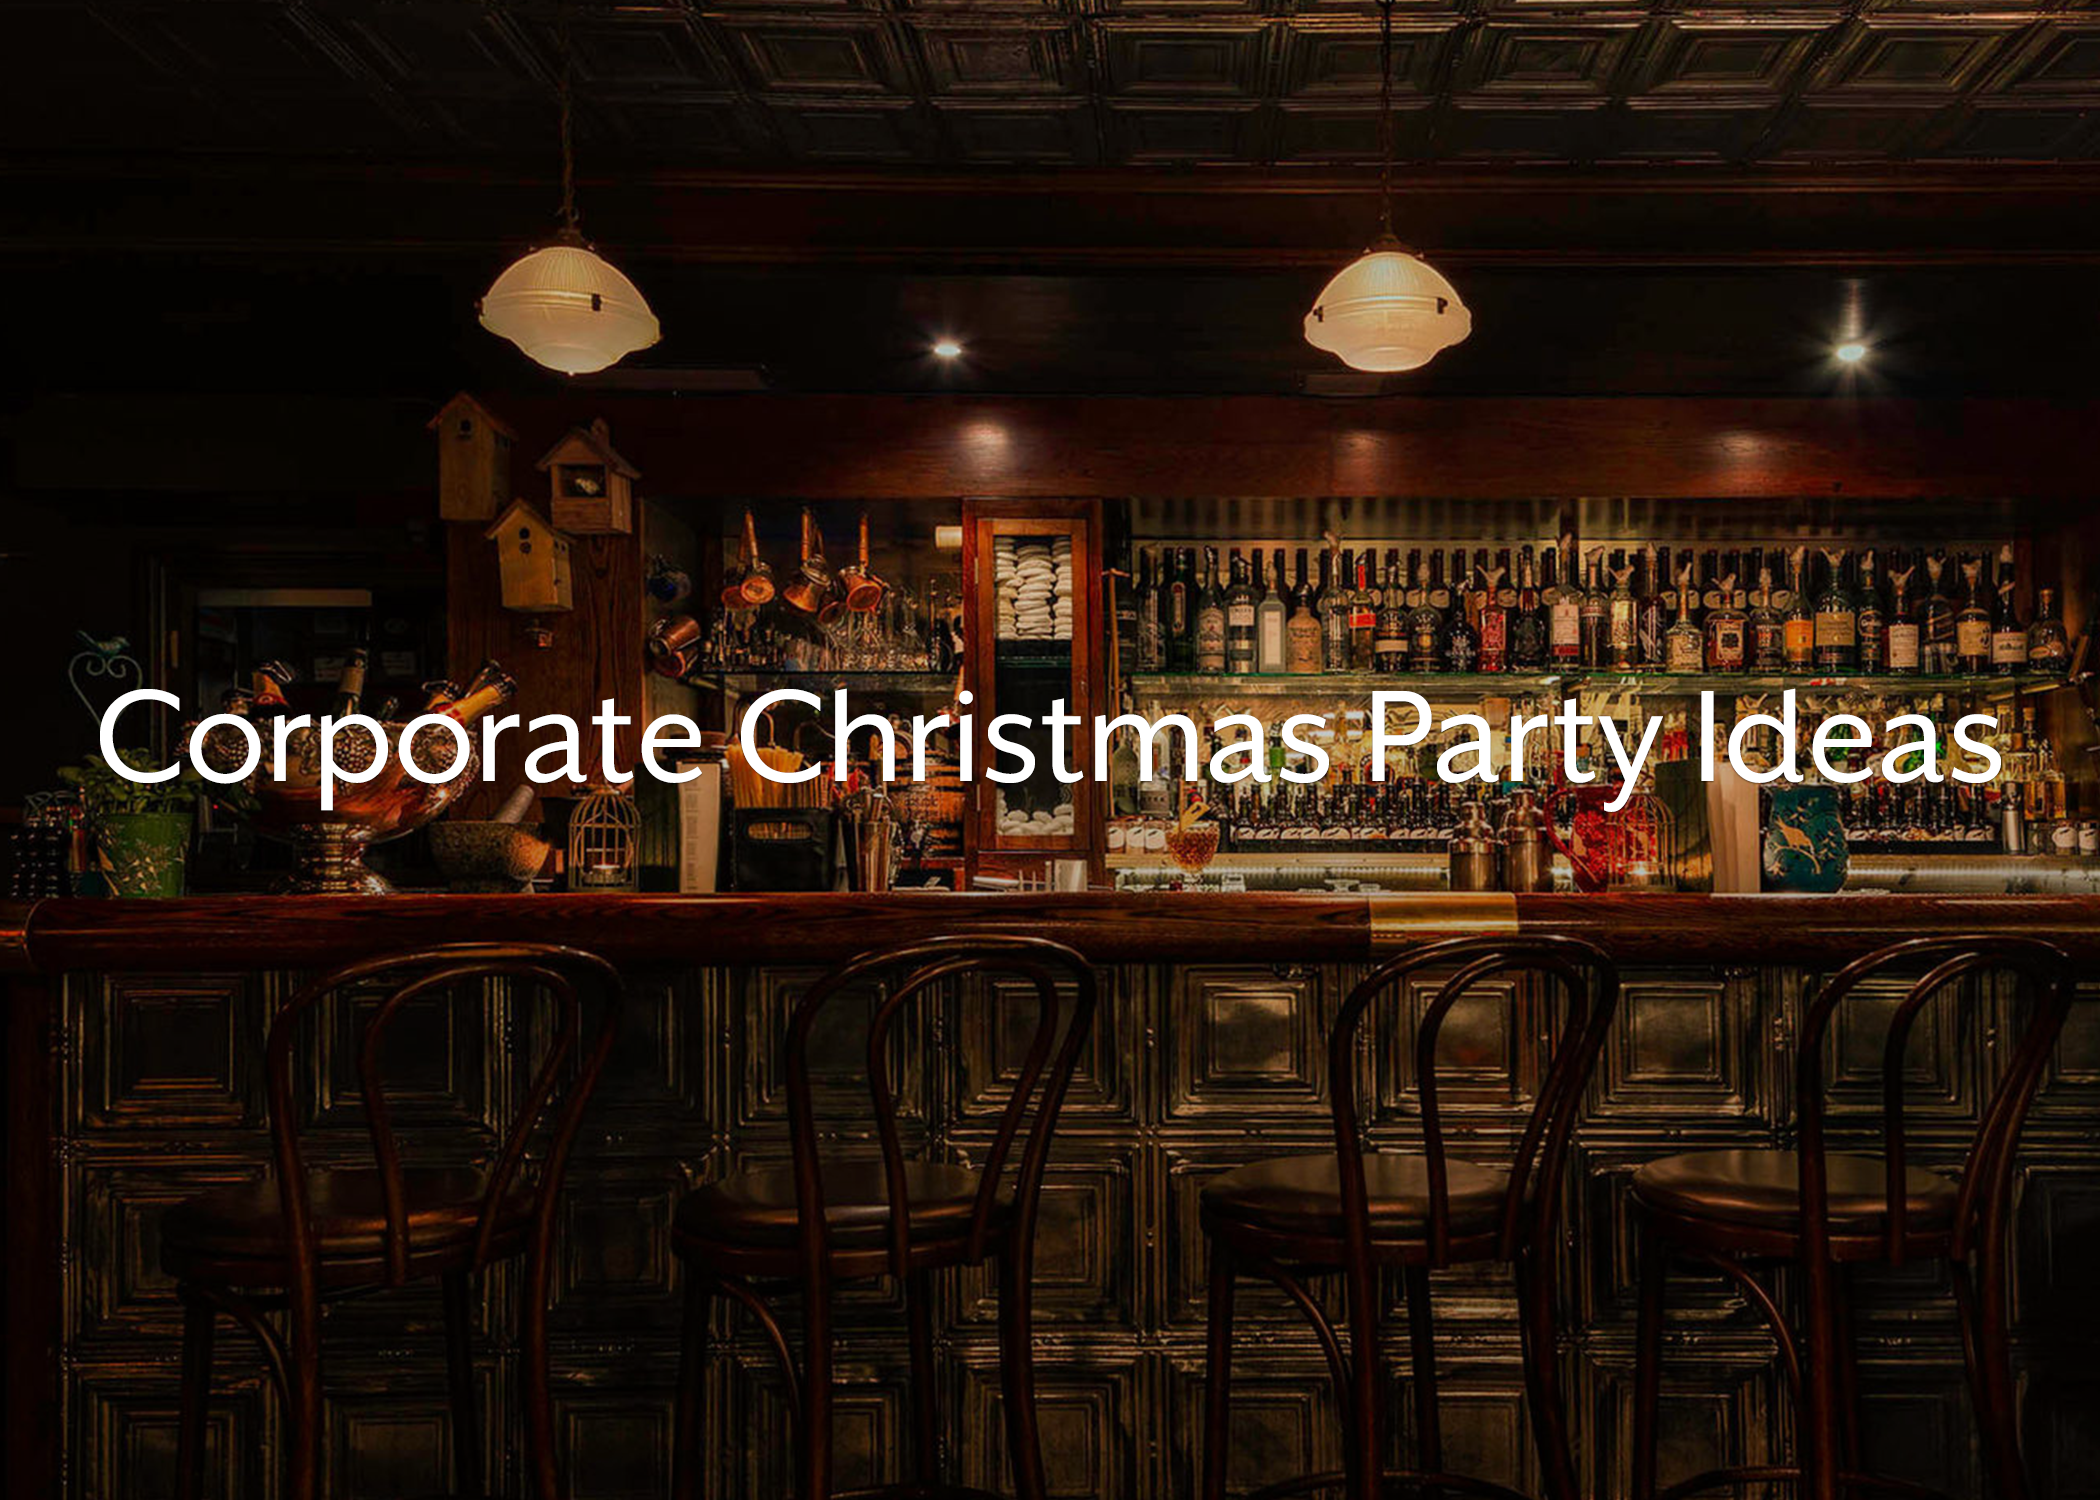 Corporate Christmas Party Ideas for 2018